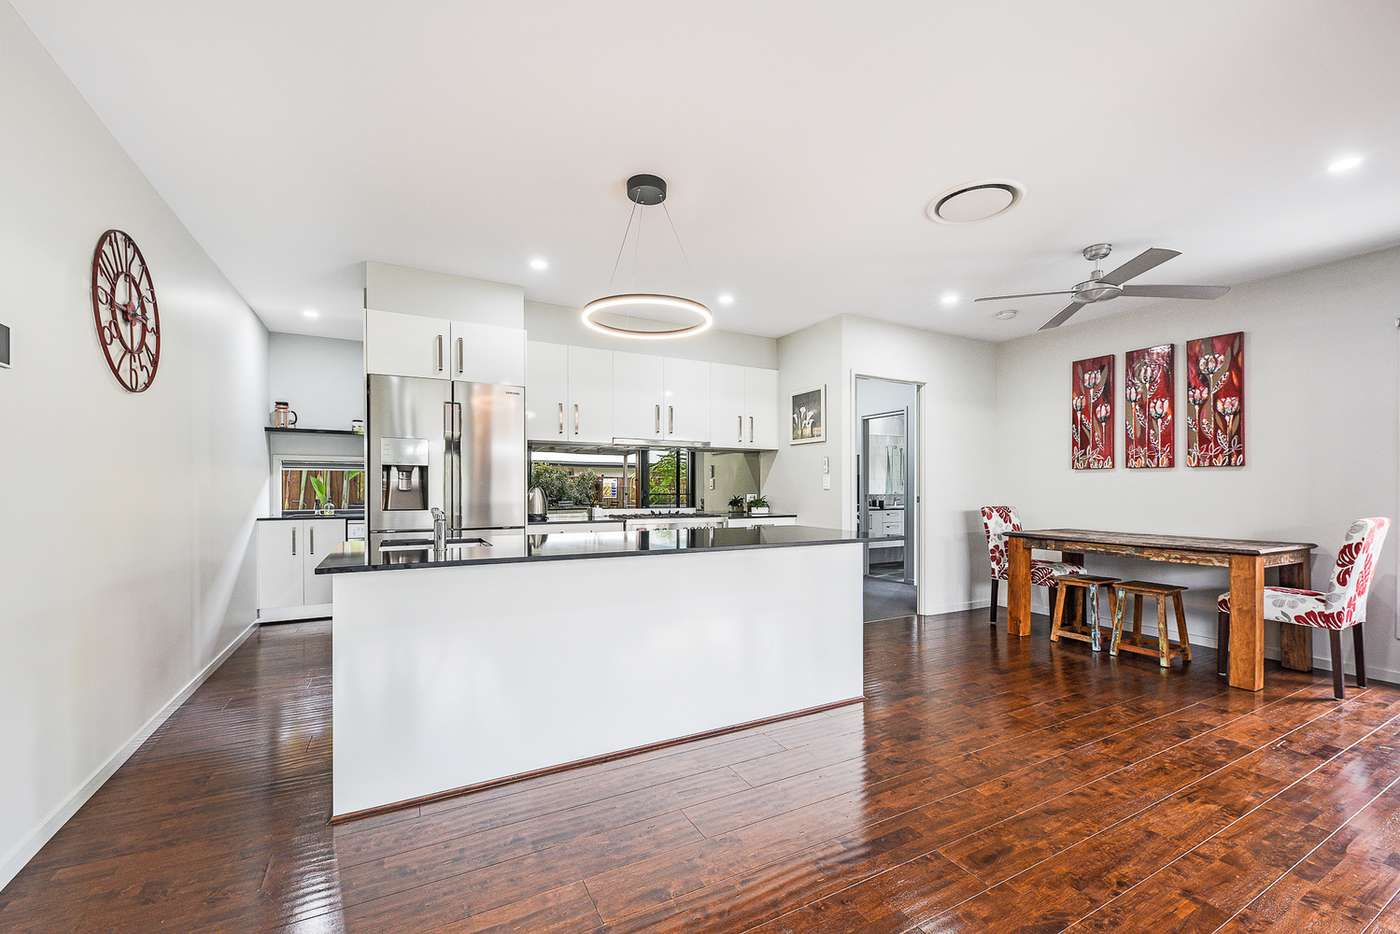 Seventh view of Homely house listing, 18 Laurina Way, Peregian Springs QLD 4573